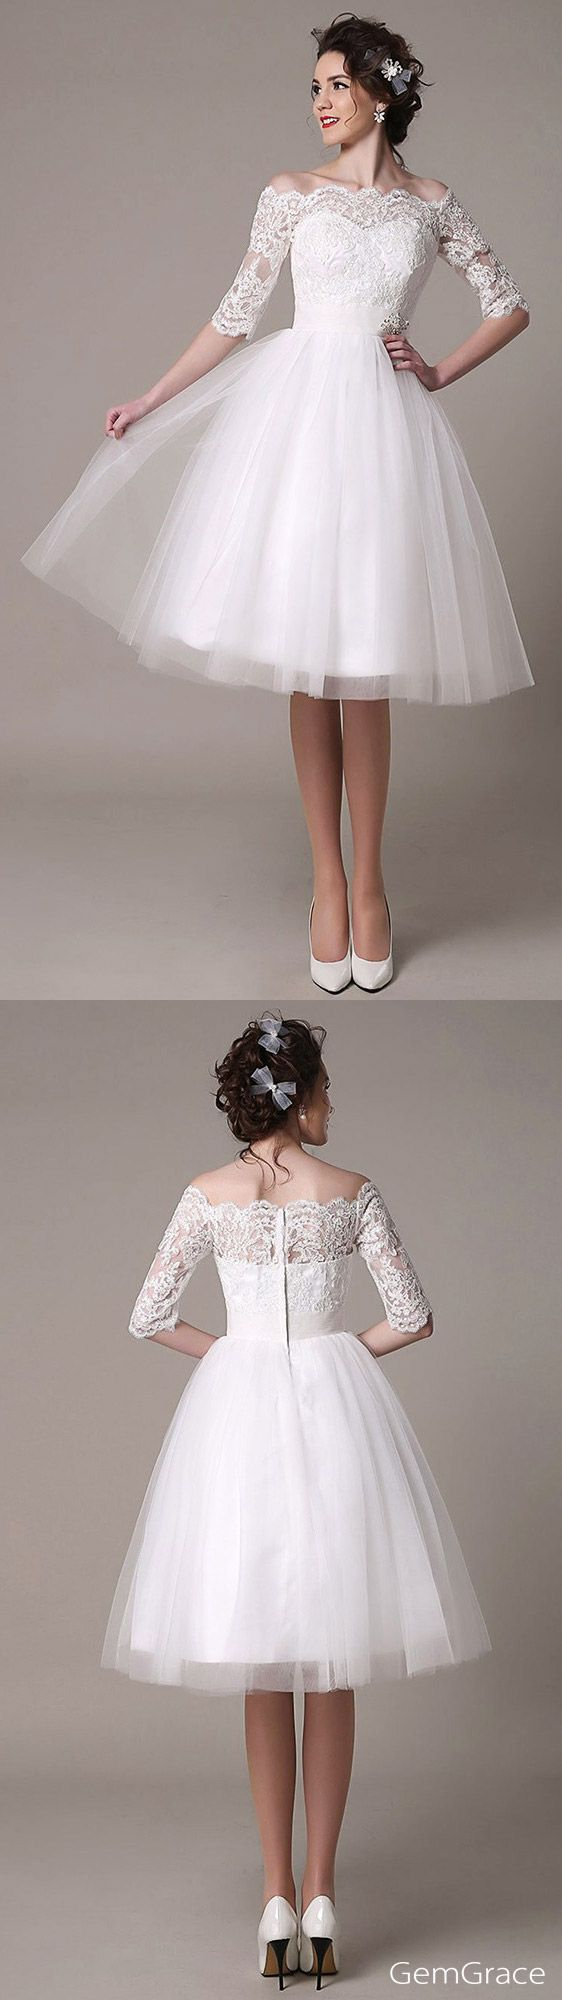 Vintage short wedding dress. I love Vintage! This beautiful knee length wedding dress is made with tulle and unique lace. One elegant half sleeved lace style for summer weddings. Unique Vow renewal dress, mature brides wedding dress, reception dress, dress for bridal shower... For comfy wearing, custom it for your size. (Bodice)